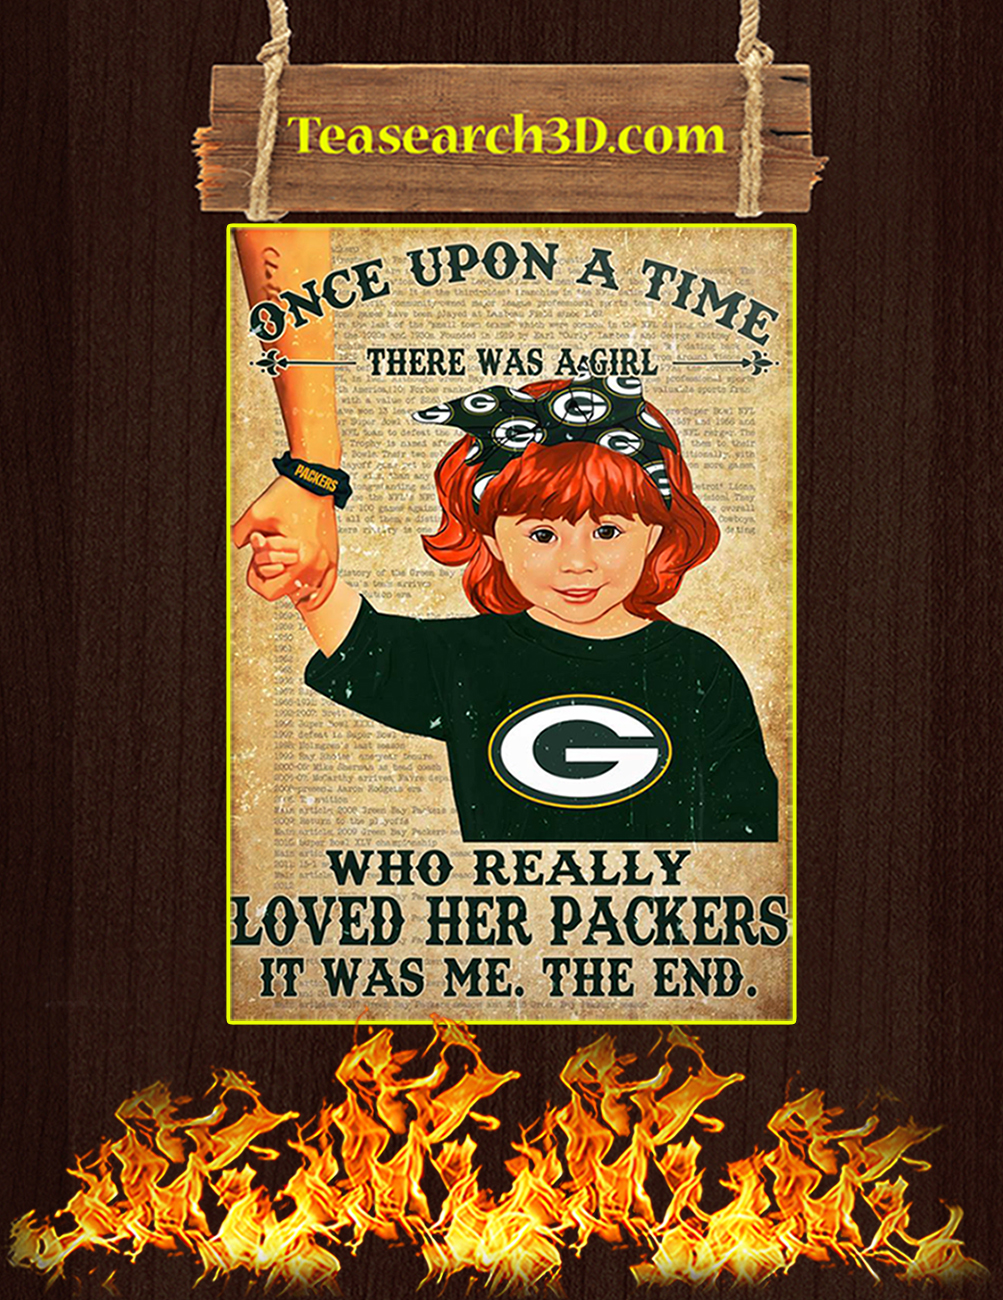 Once upon a time there was a girl who really loved her packers poster 2